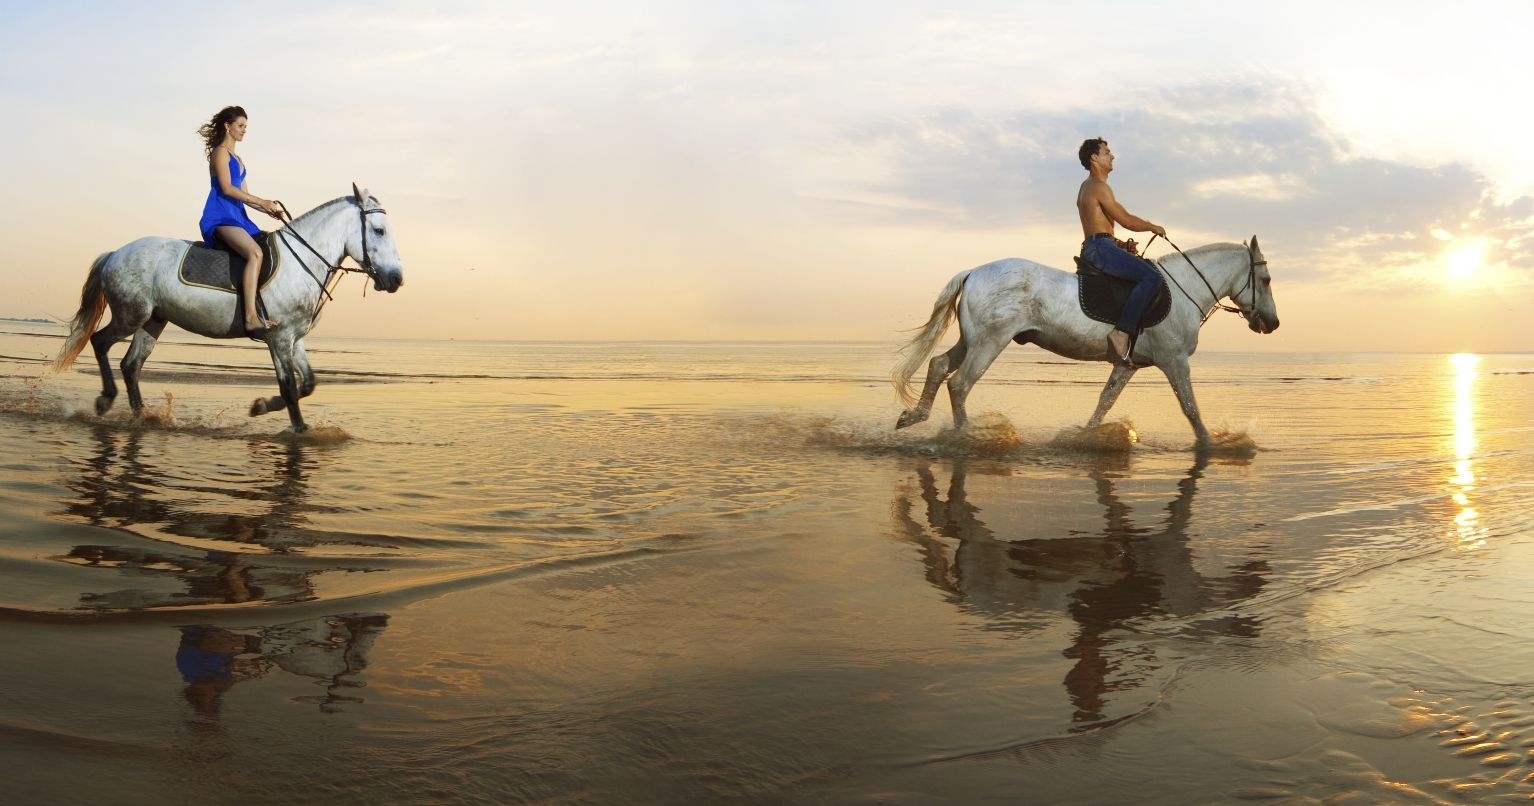 Horseback Ride Beach United Kingdom Tinggly Experience Gifts